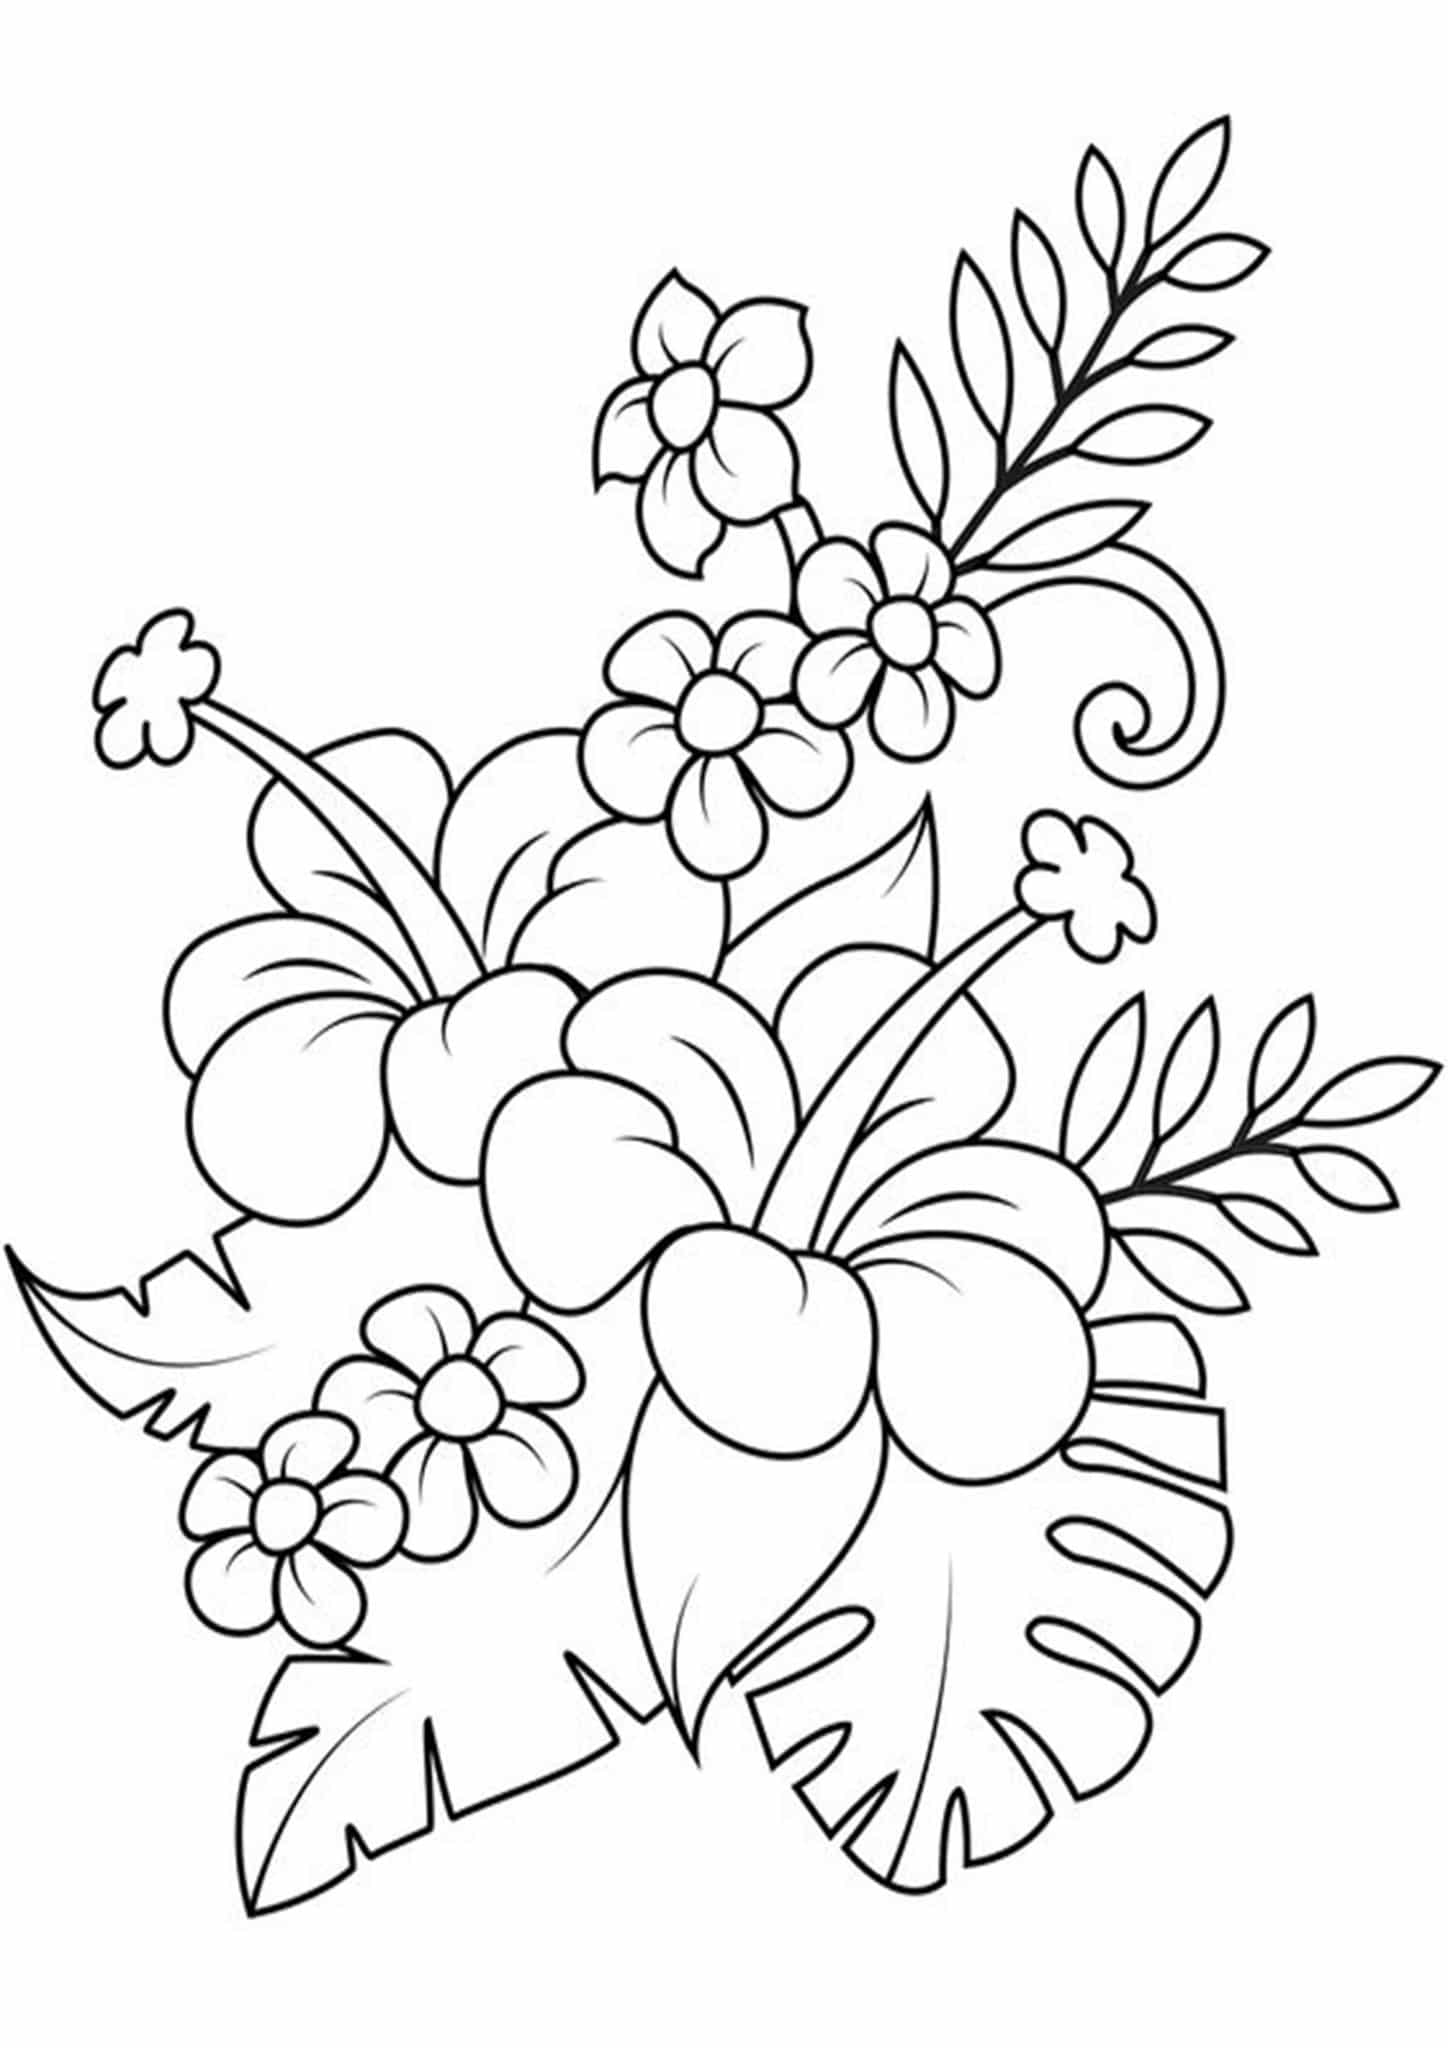 coloring pages of flowers spring flowers coloring pages printable of pages flowers coloring